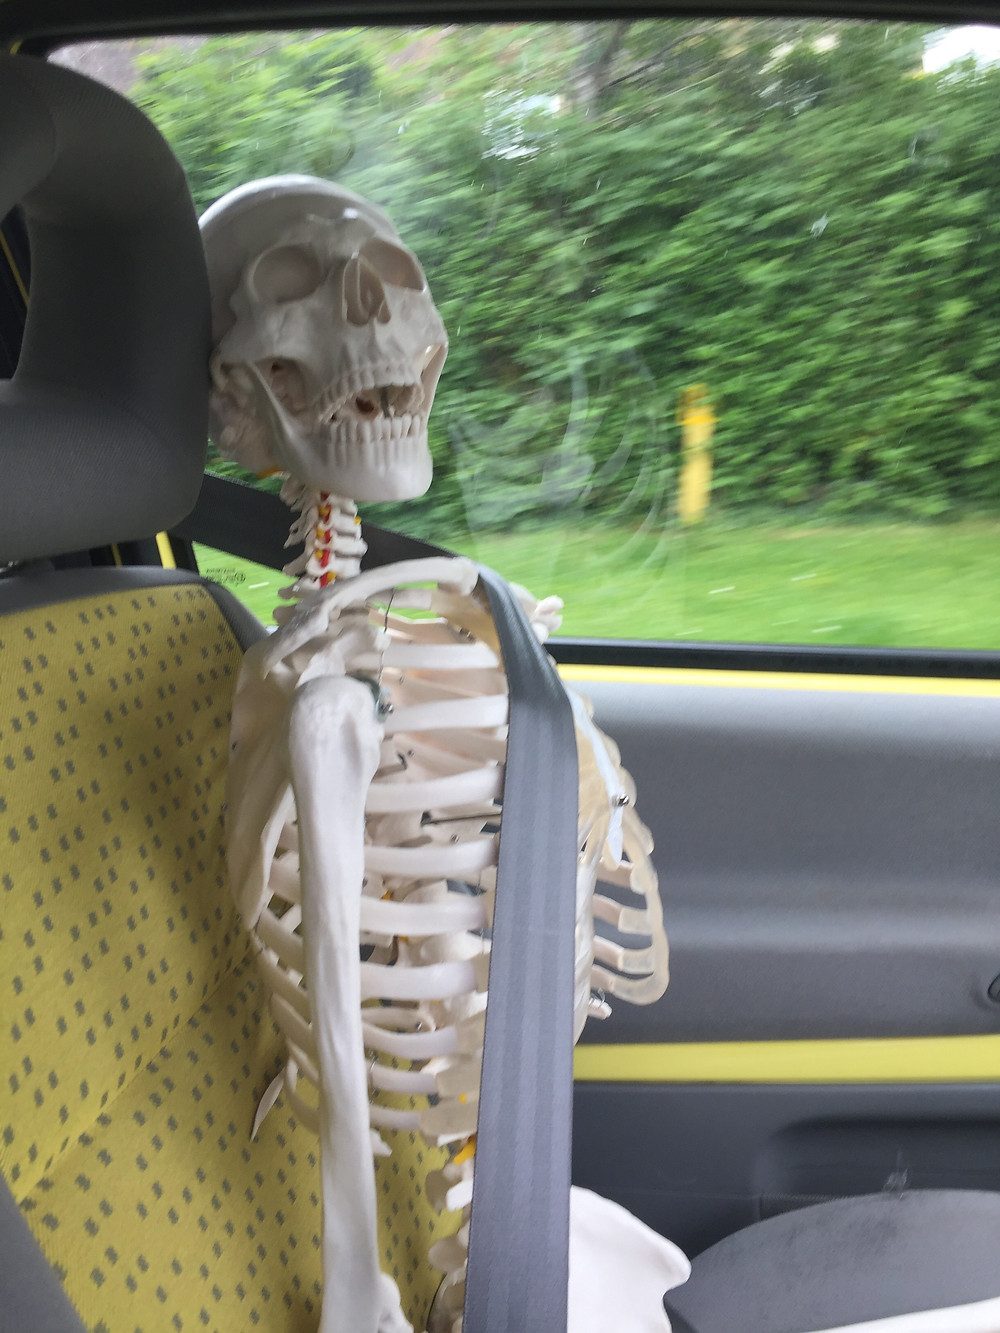 Skeleton in the car with a seatbelt on .